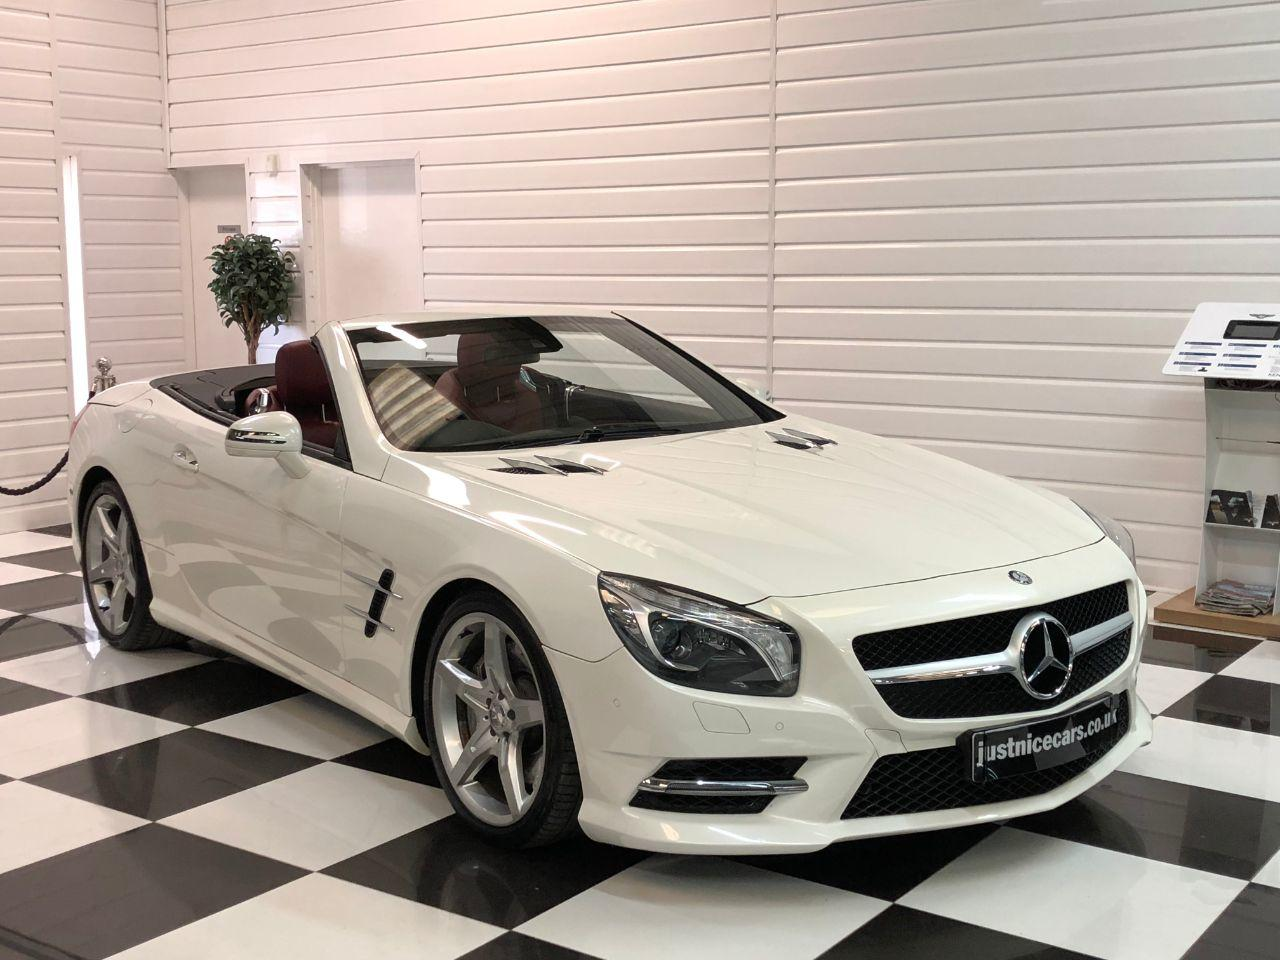 Mercedes-Benz SL Class SL 500 4.7 V8 Auto Convertible Petrol Diamond White Metallic